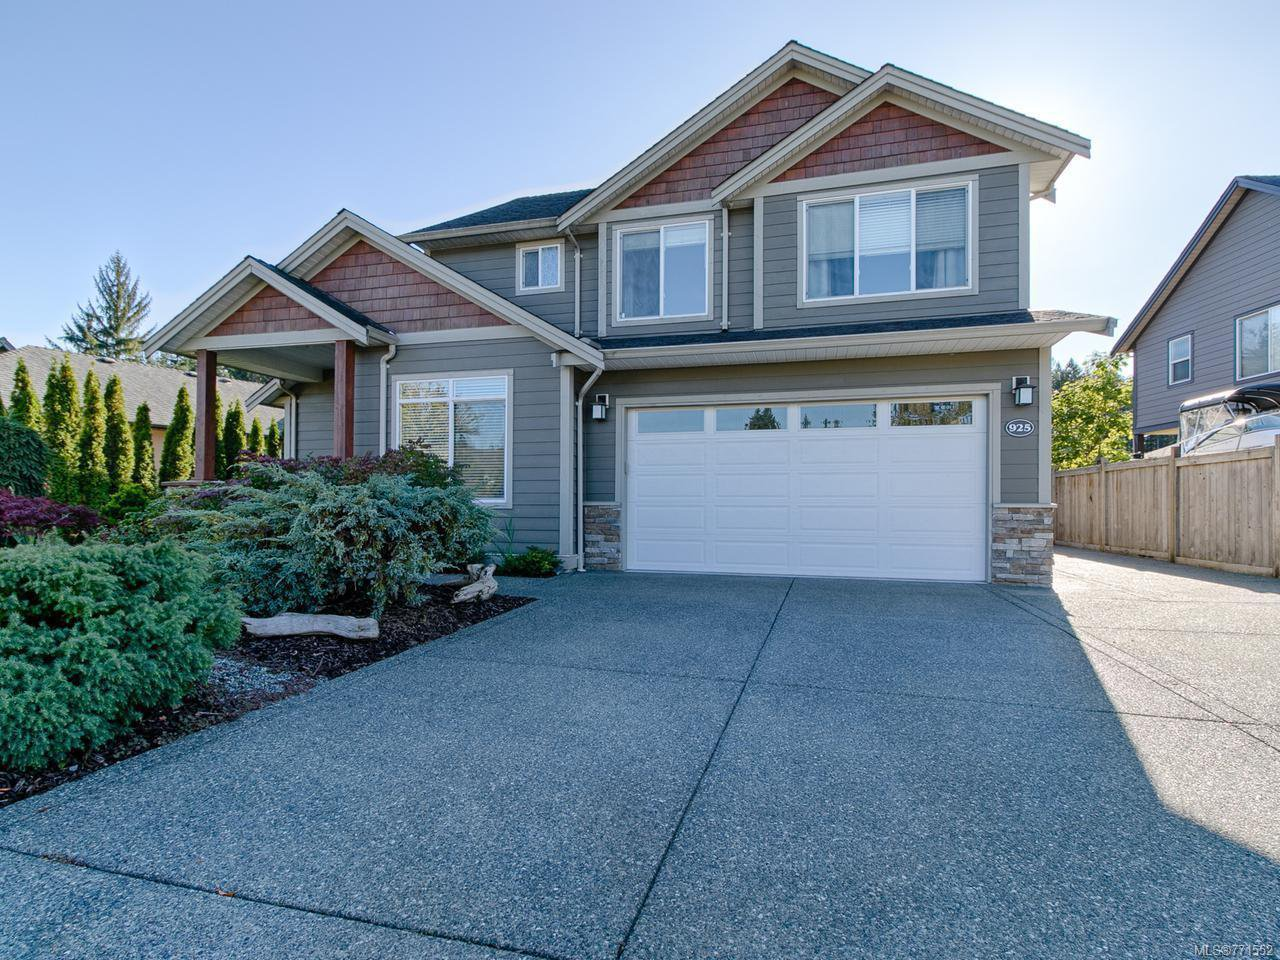 Main Photo: 925 Heritage Meadow Dr in CAMPBELL RIVER: CR Campbell River Central House for sale (Campbell River)  : MLS®# 771552